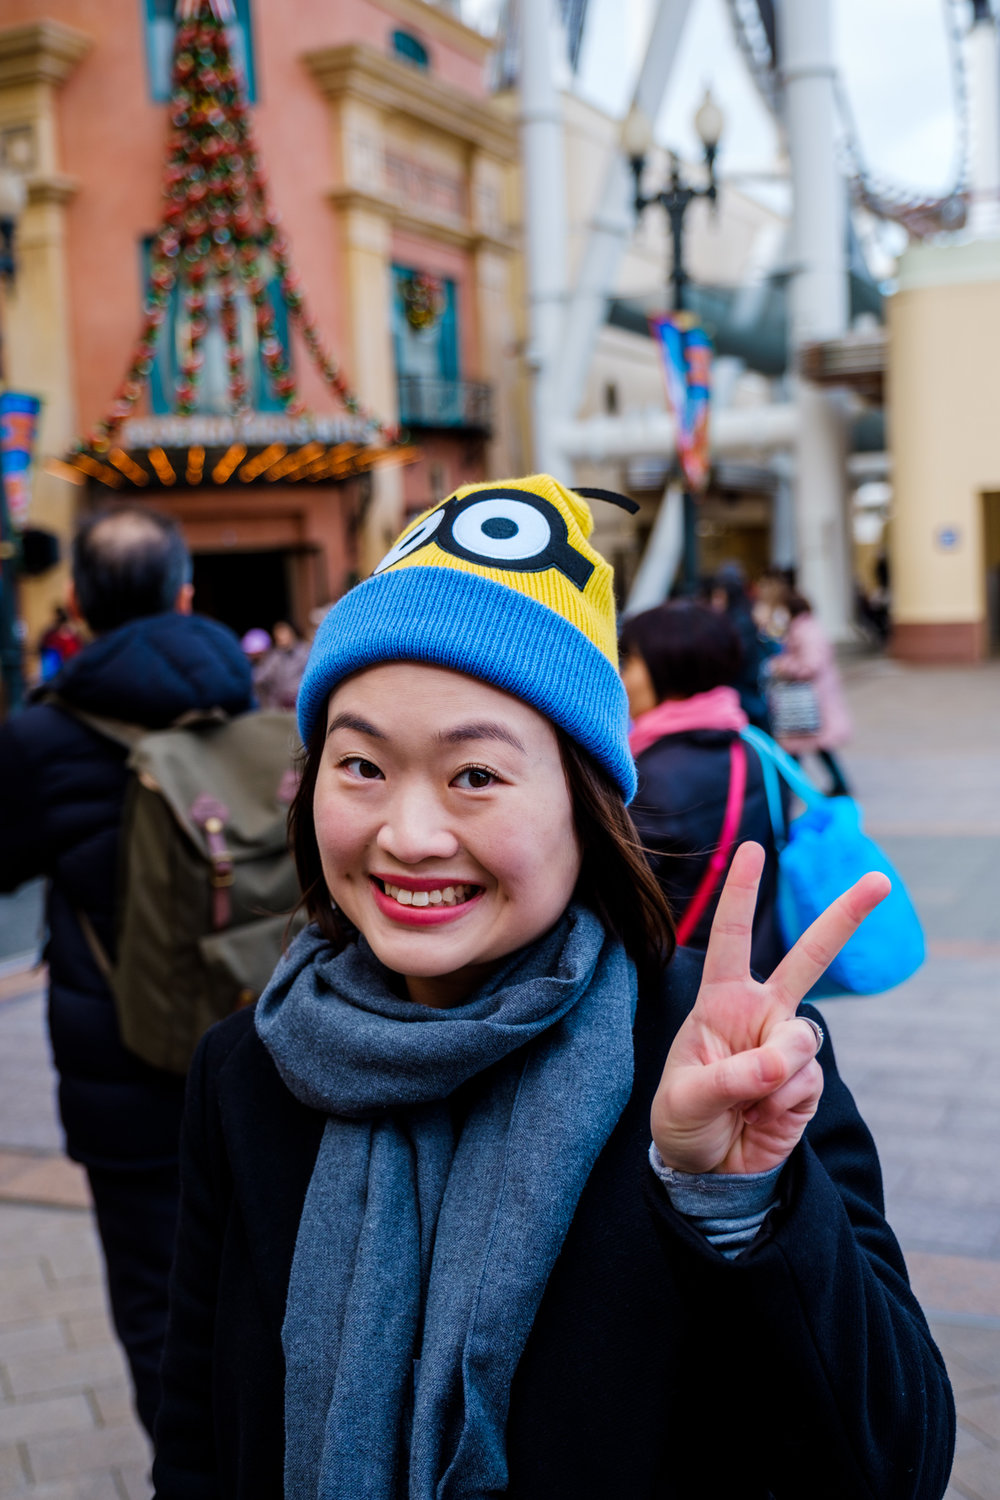 First thing we did when we got in, was to get this minion beanie